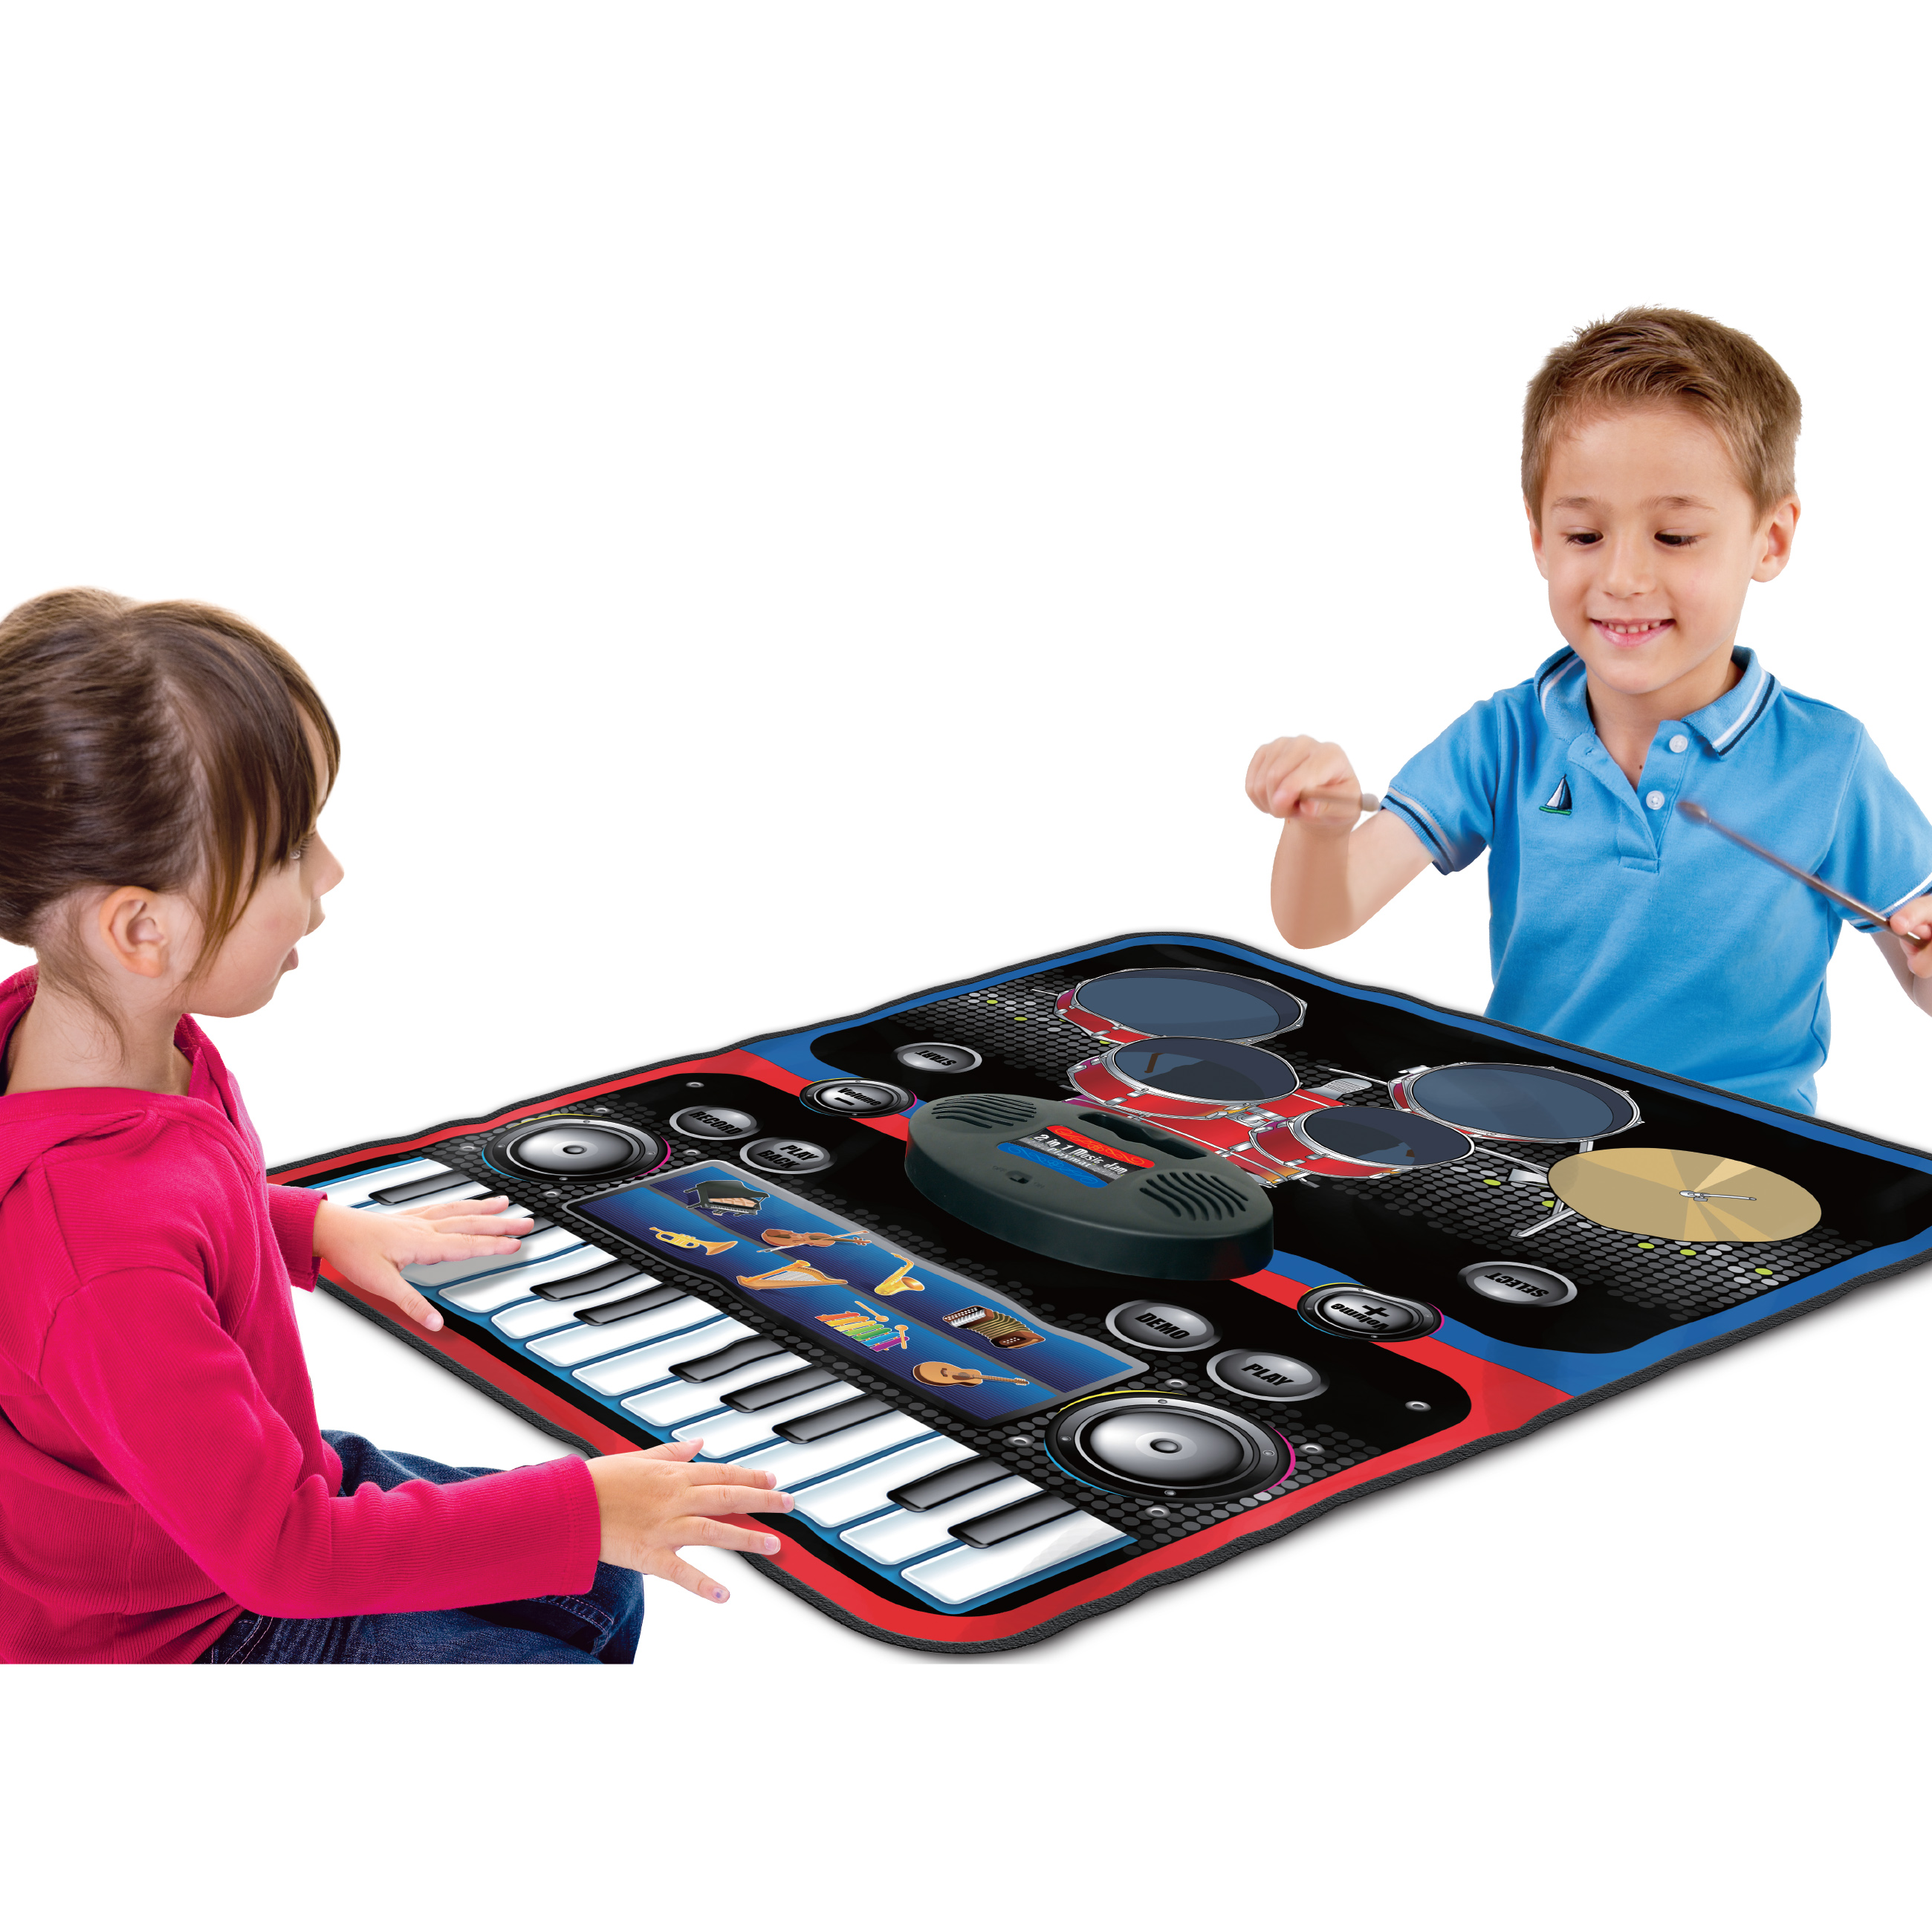 Best Choice Products Kids 2 IN 1 Play Together Musical Play Mat with Drums and Keyboard by Best Choice Products